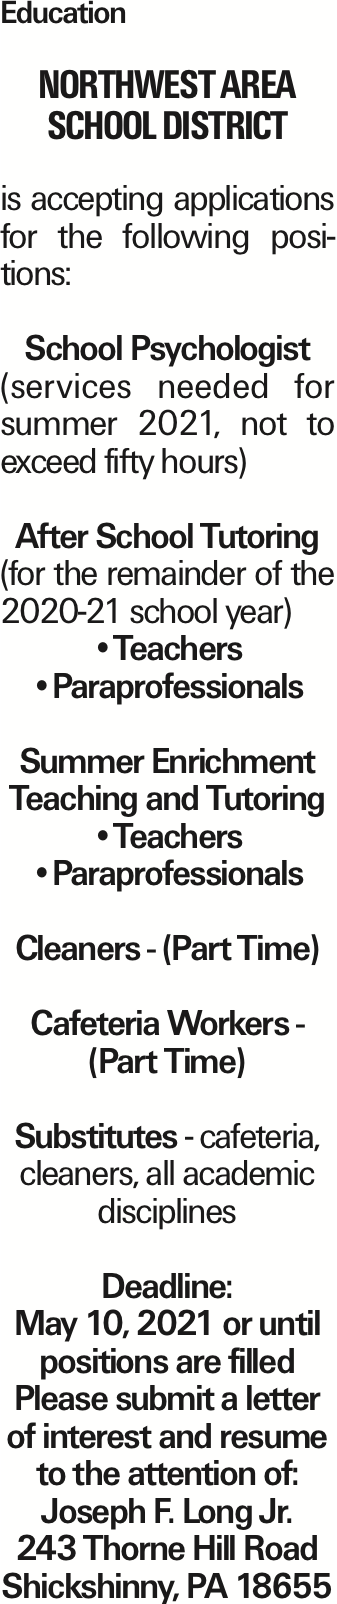 Education Northwest Area School District is accepting applications for the following positions: School Psychologist (services needed for summer 2021, not to exceed fifty hours) After School Tutoring (for the remainder of the 2020-21 school year) --Teachers --Paraprofessionals Summer Enrichment Teaching and Tutoring --Teachers --Paraprofessionals Cleaners - (Part Time) Cafeteria Workers - (Part Time) Substitutes - cafeteria, cleaners, all academic disciplines Deadline: May 10, 2021 or until positions are filled Please submit a letter of interest and resume to the attention of: Joseph F. Long Jr. 243 Thorne Hill Road Shickshinny, PA 18655 As published in the Press Enterprise.